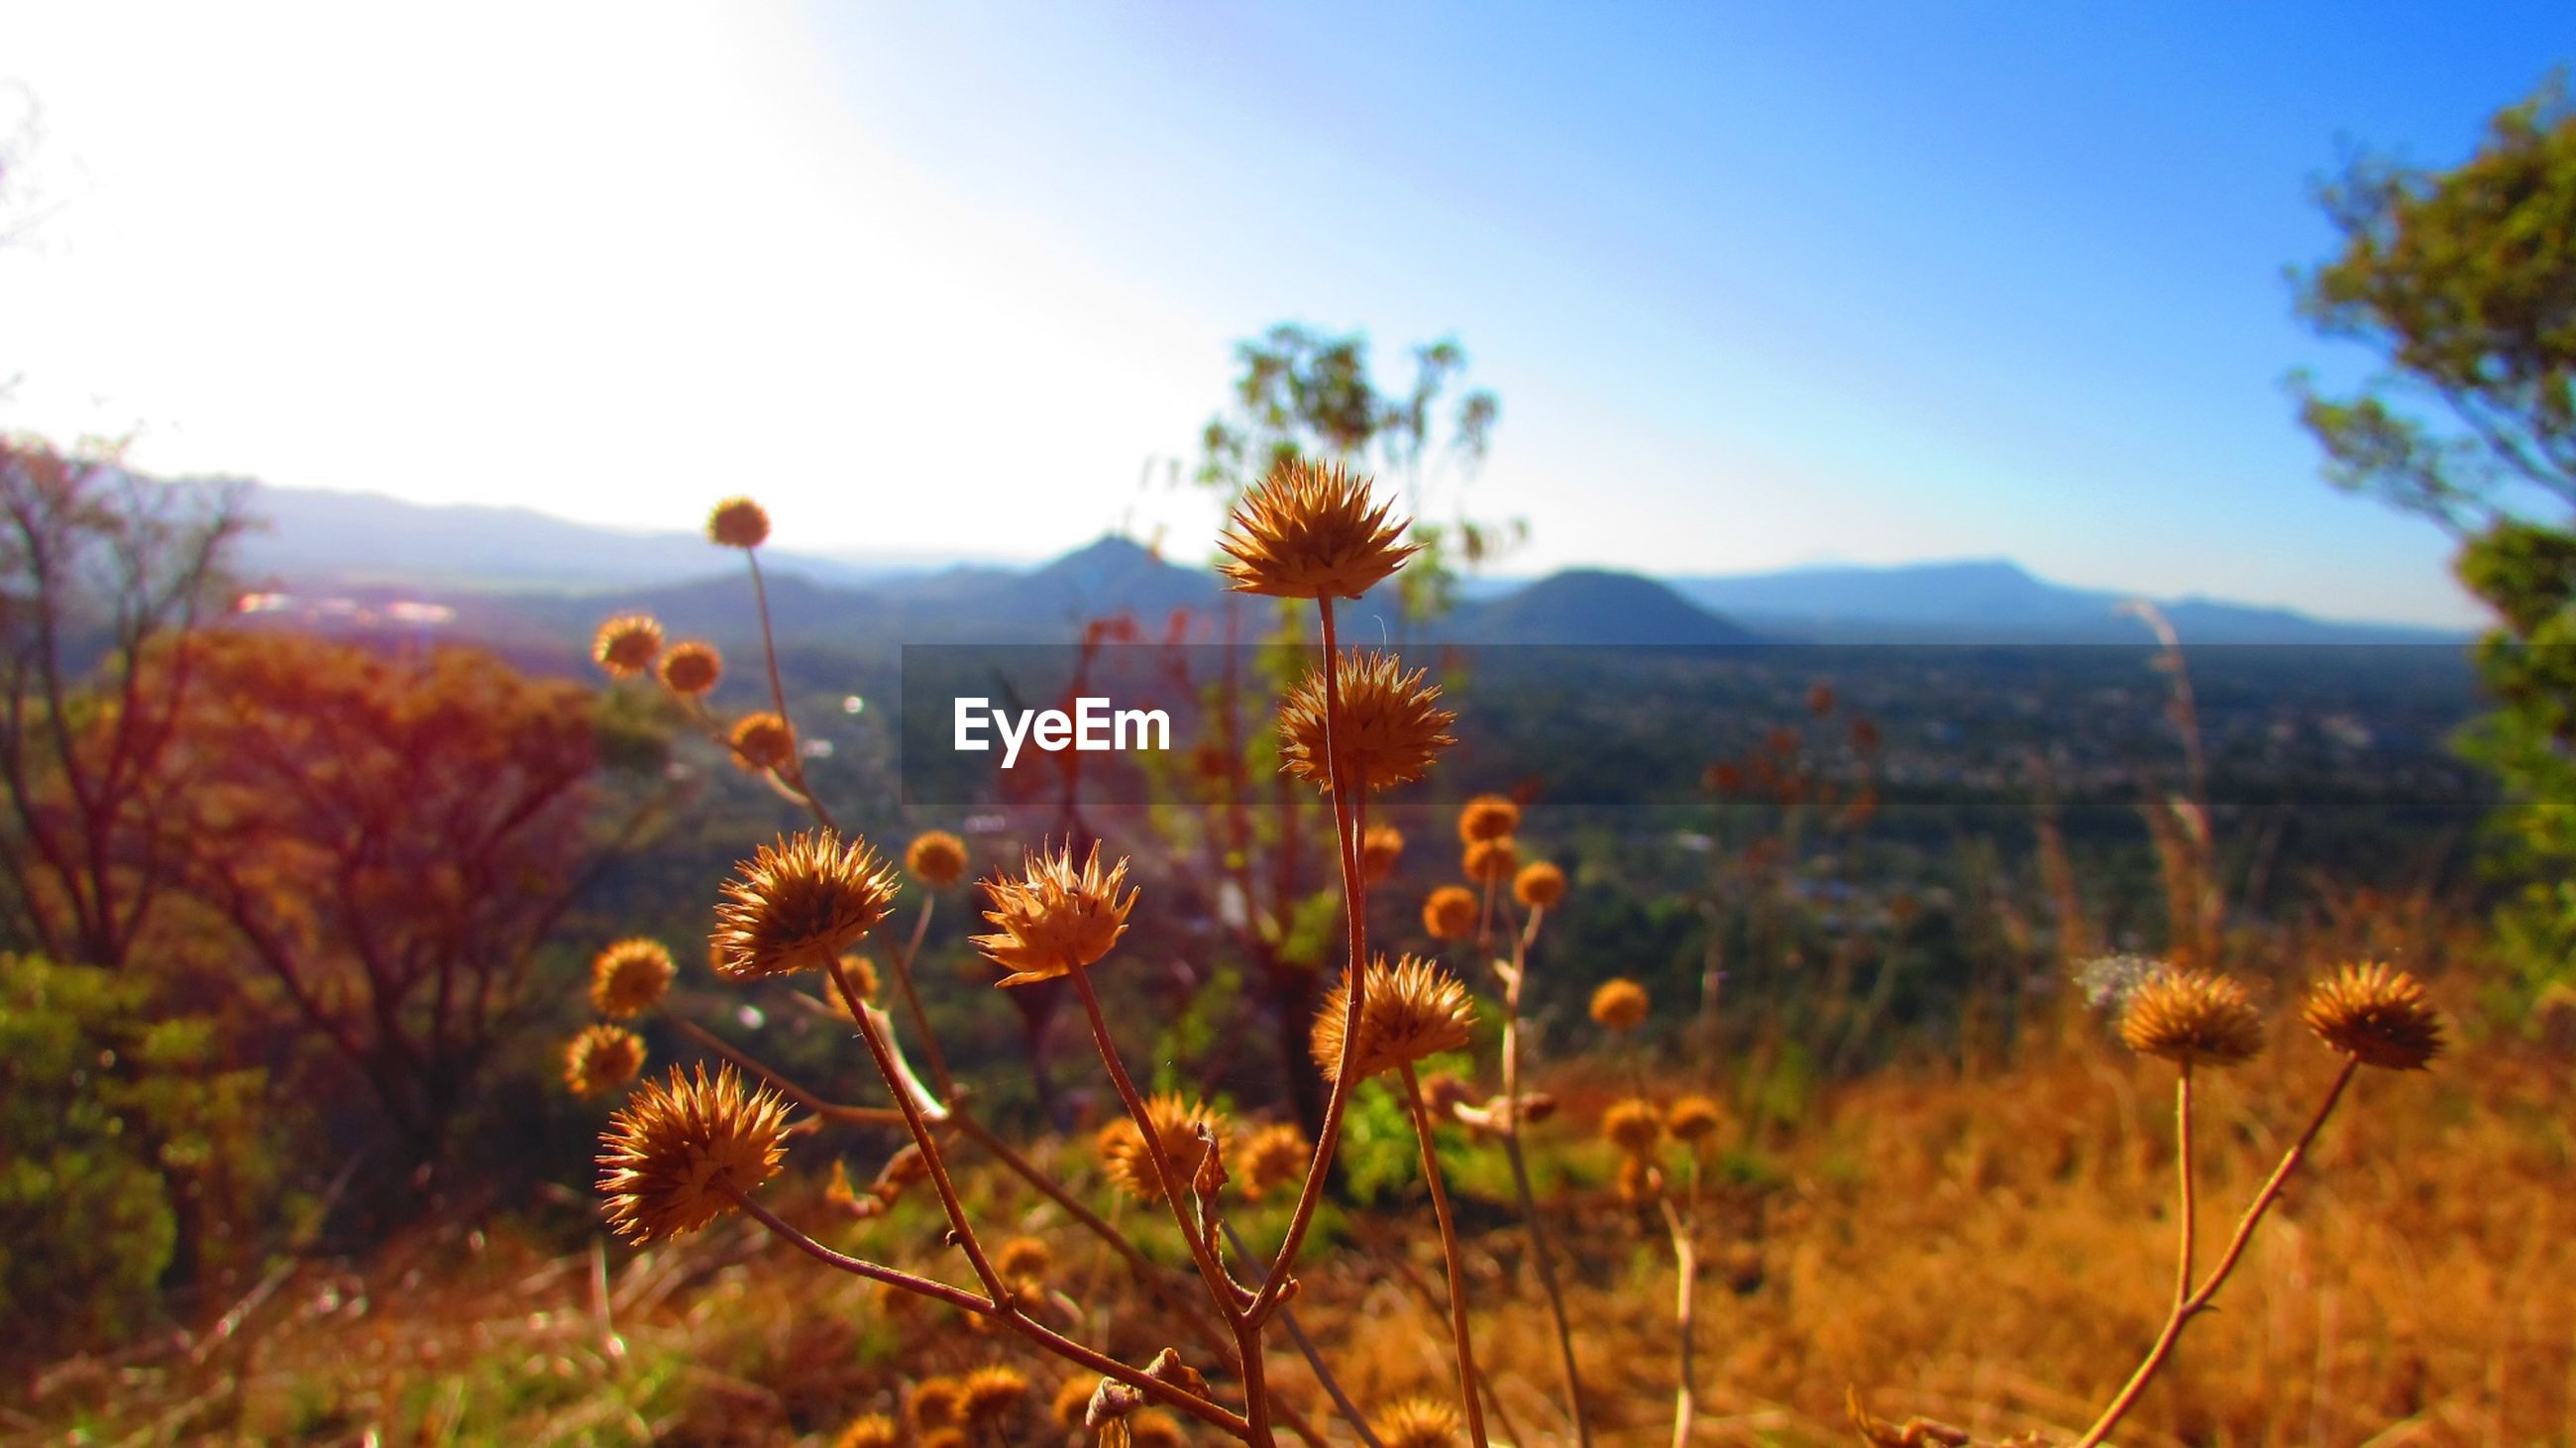 Flowers growing by landscape against sky